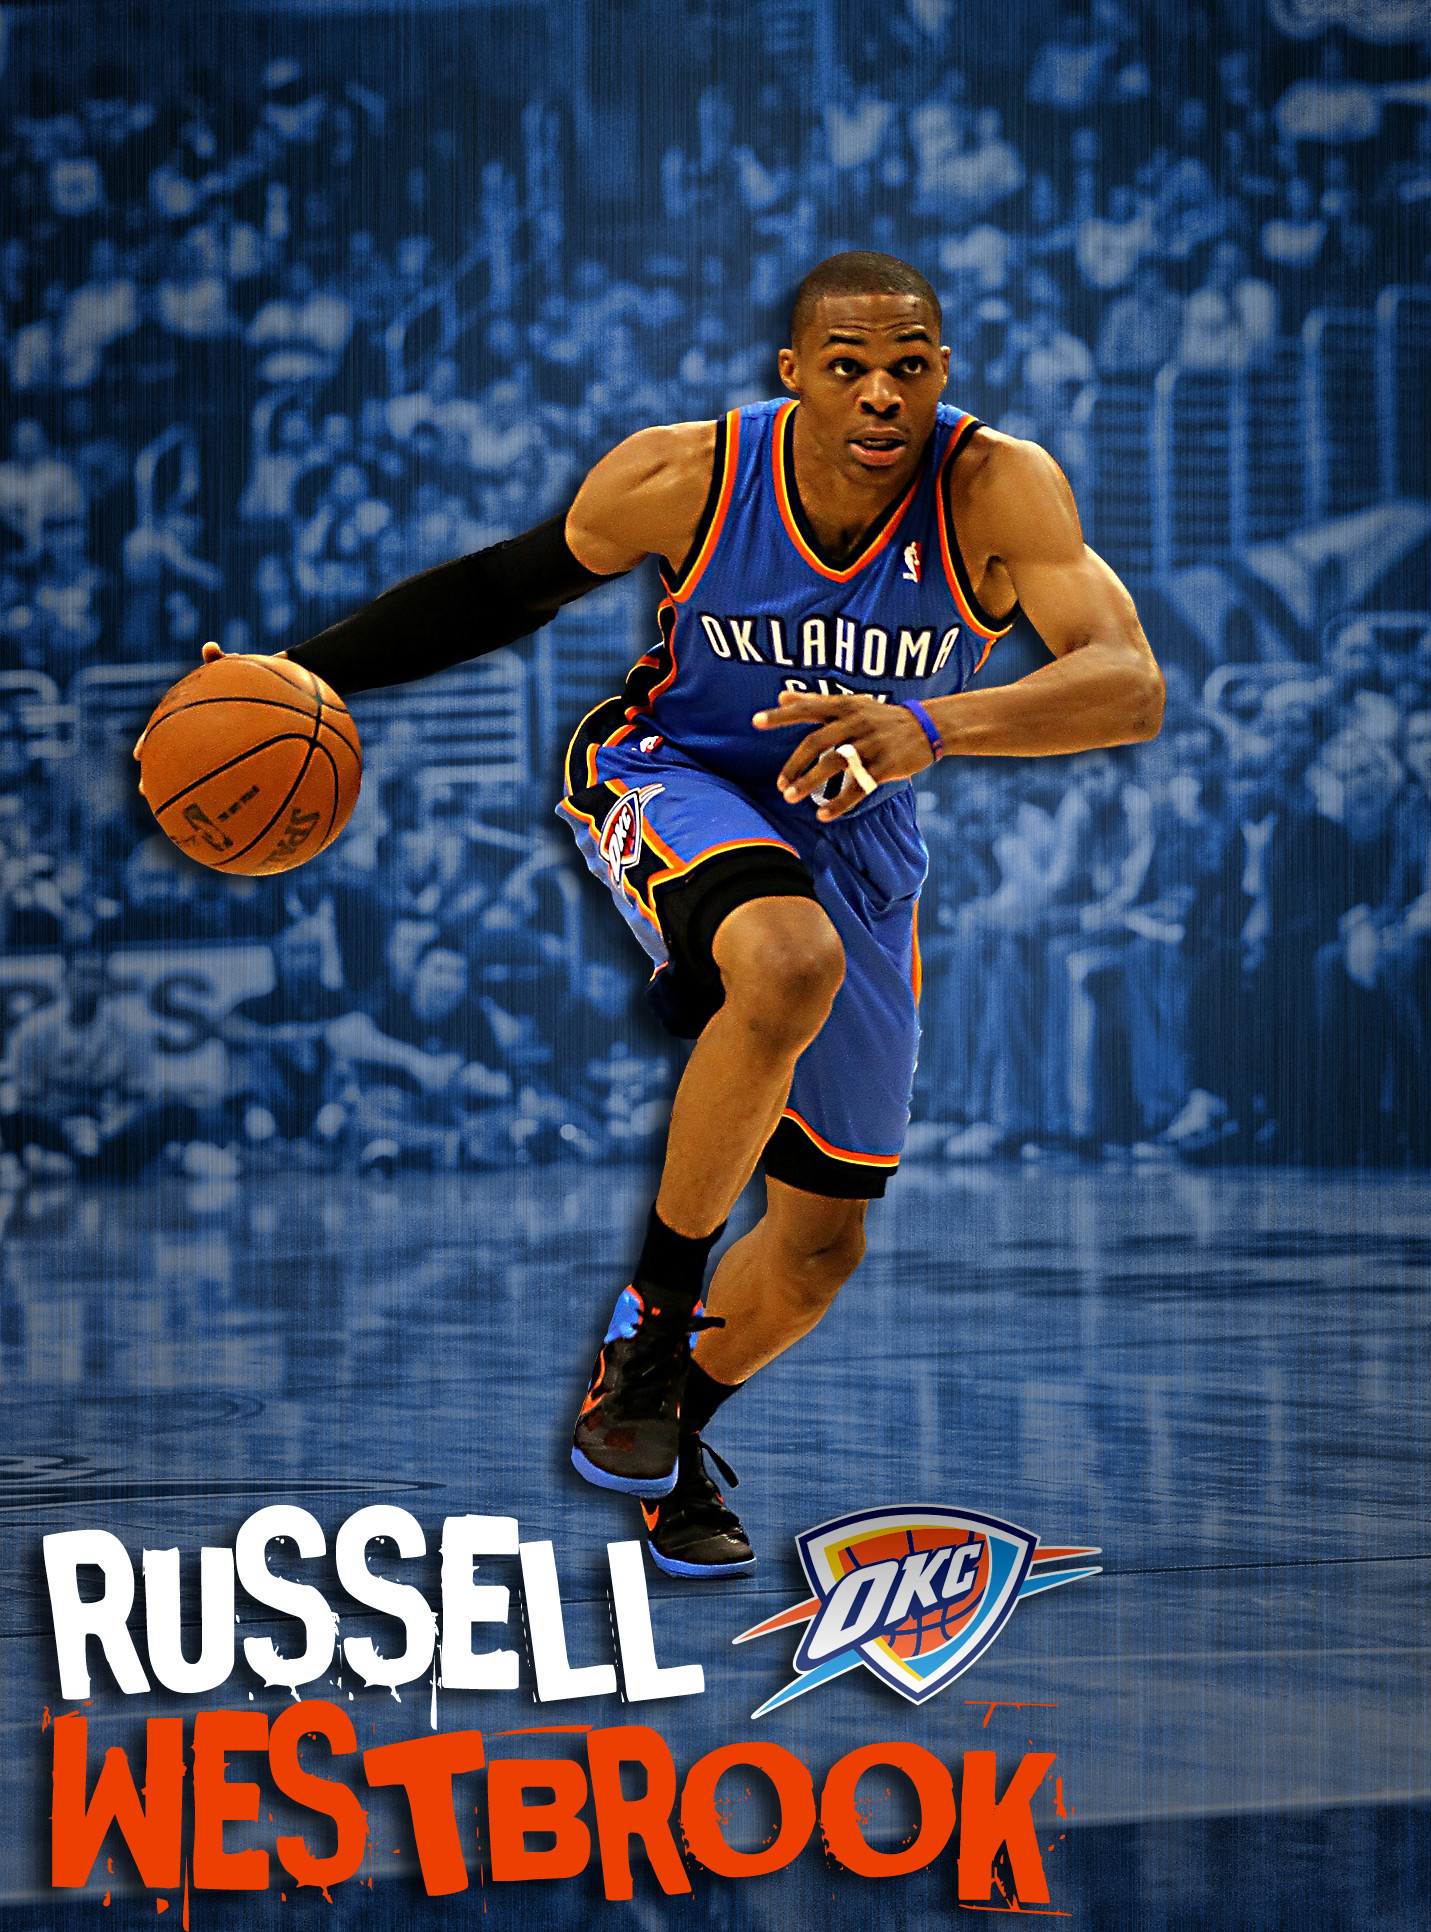 Russell Westbrook 0 by rhurst Russell Westbrook 0 by rhurst